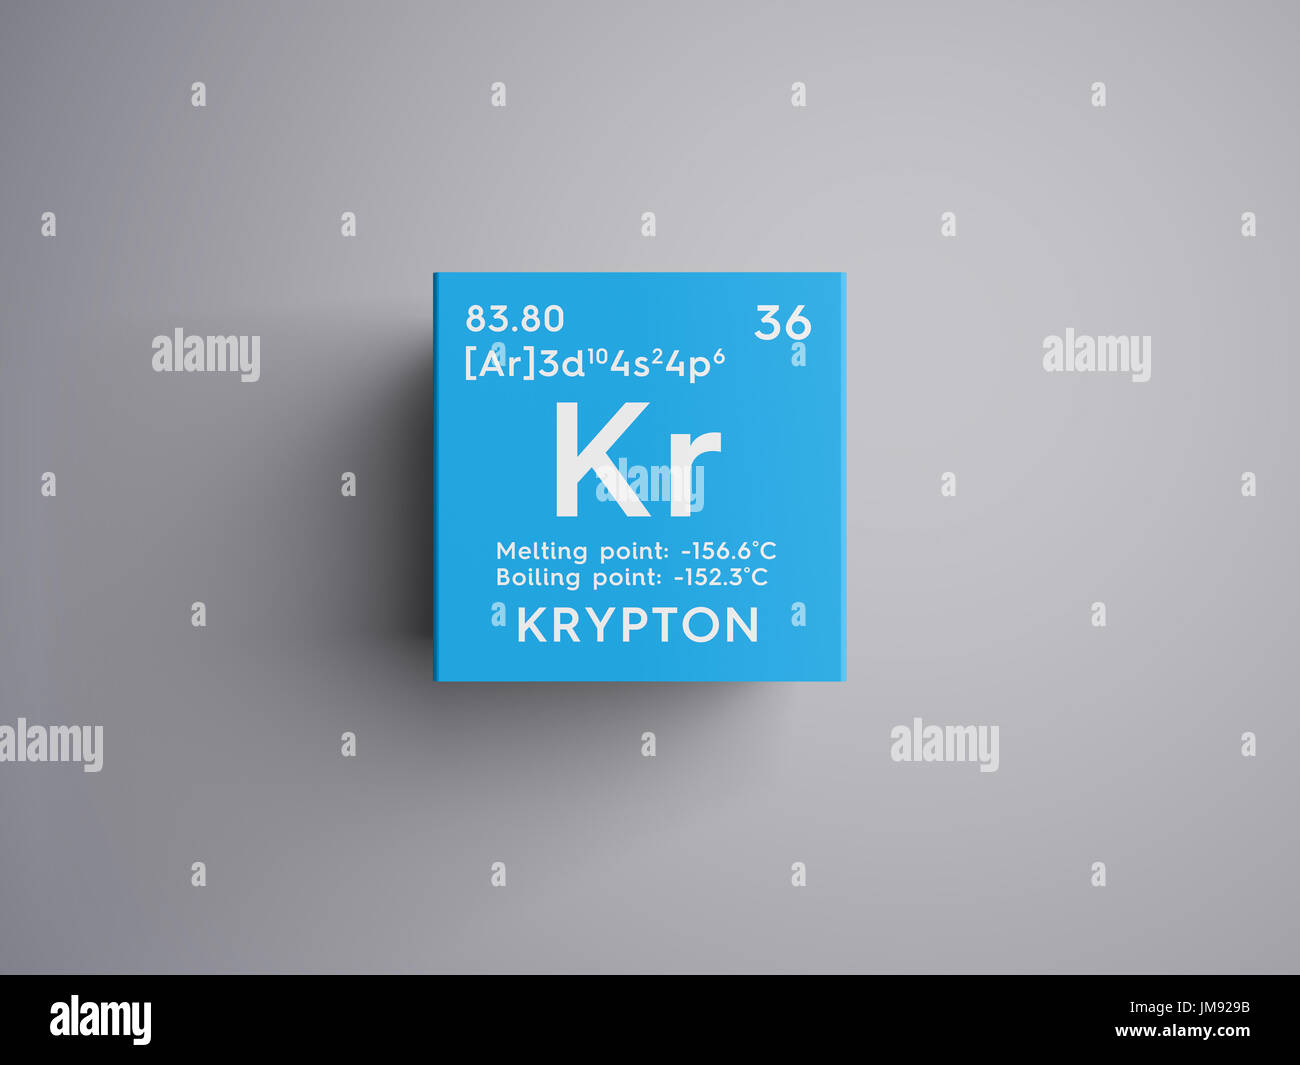 Krypton noble gases chemical element of mendeleevs periodic table krypton noble gases chemical element of mendeleevs periodic table krypton in square cube creative concept urtaz Choice Image